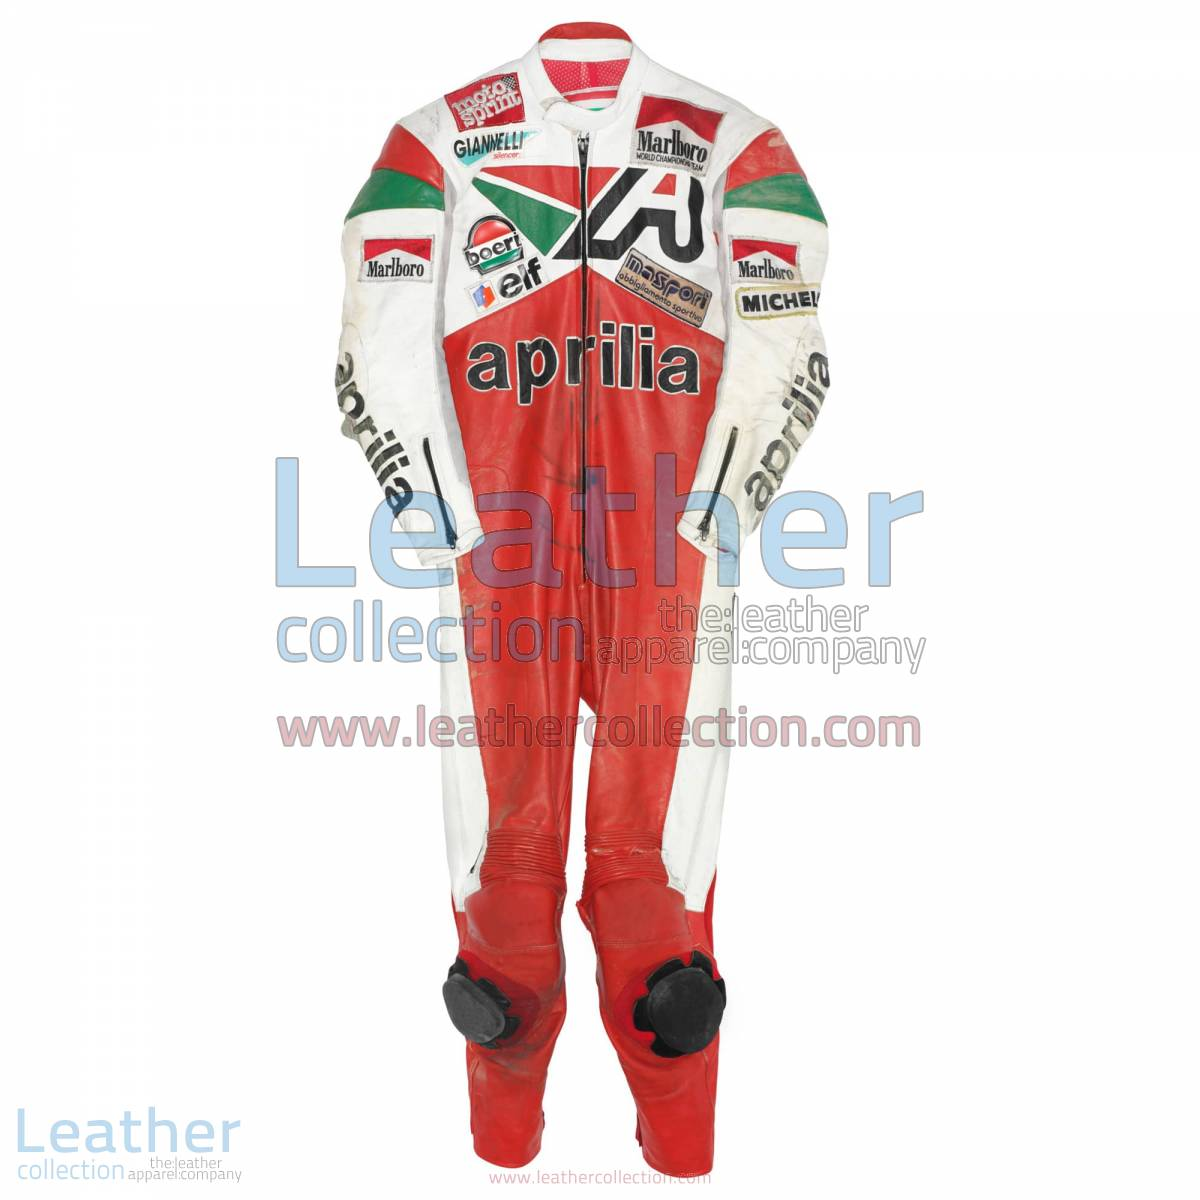 Loris Reggiani Aprilia GP 1987 Leather Suit | aprilia leather suit